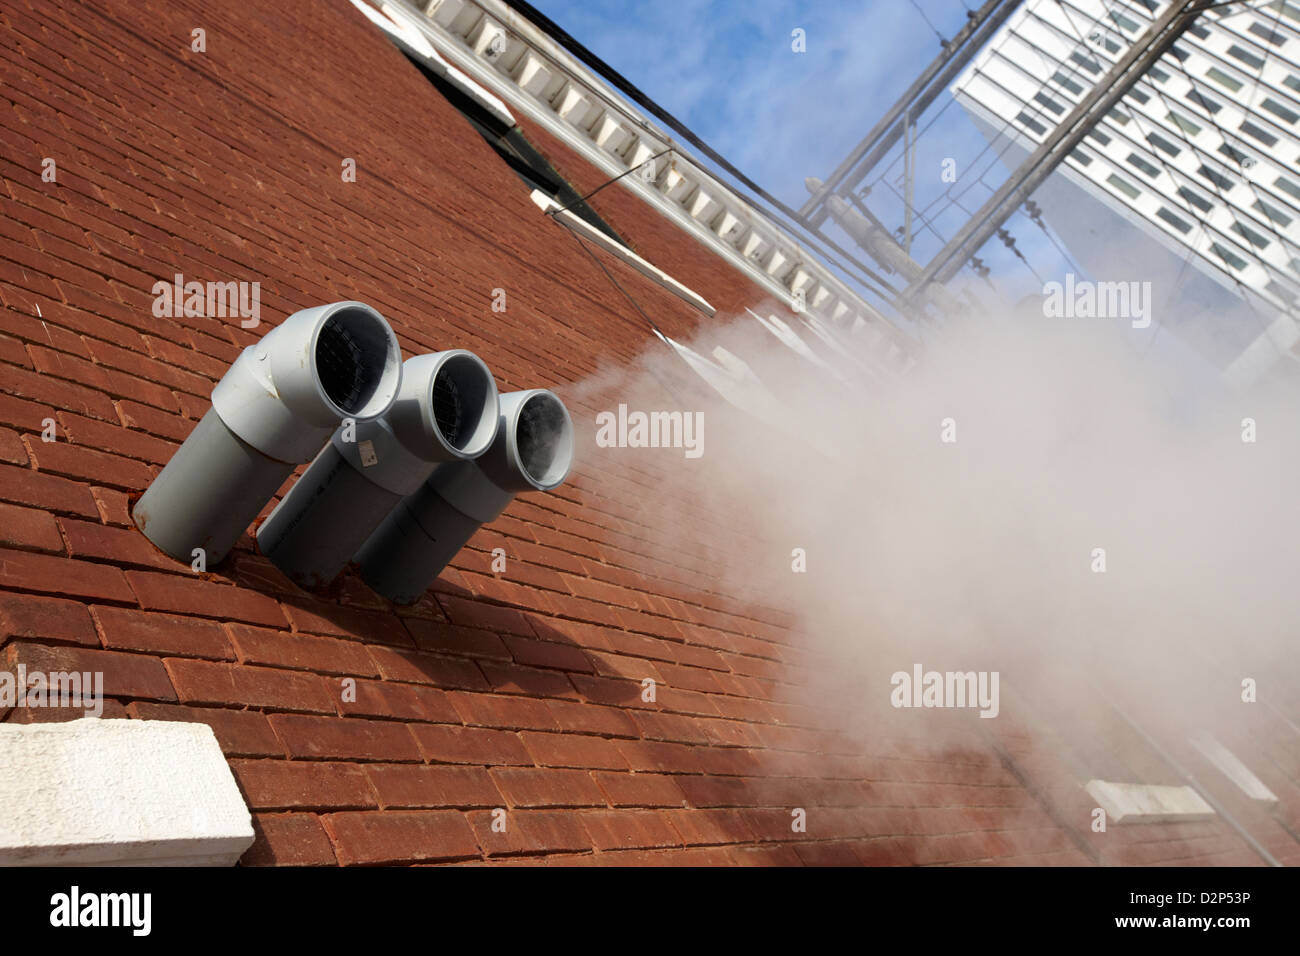 steam venting from plastic exhaust pipes on old brick building downtown Saskatoon Saskatchewan Canada - Stock Image